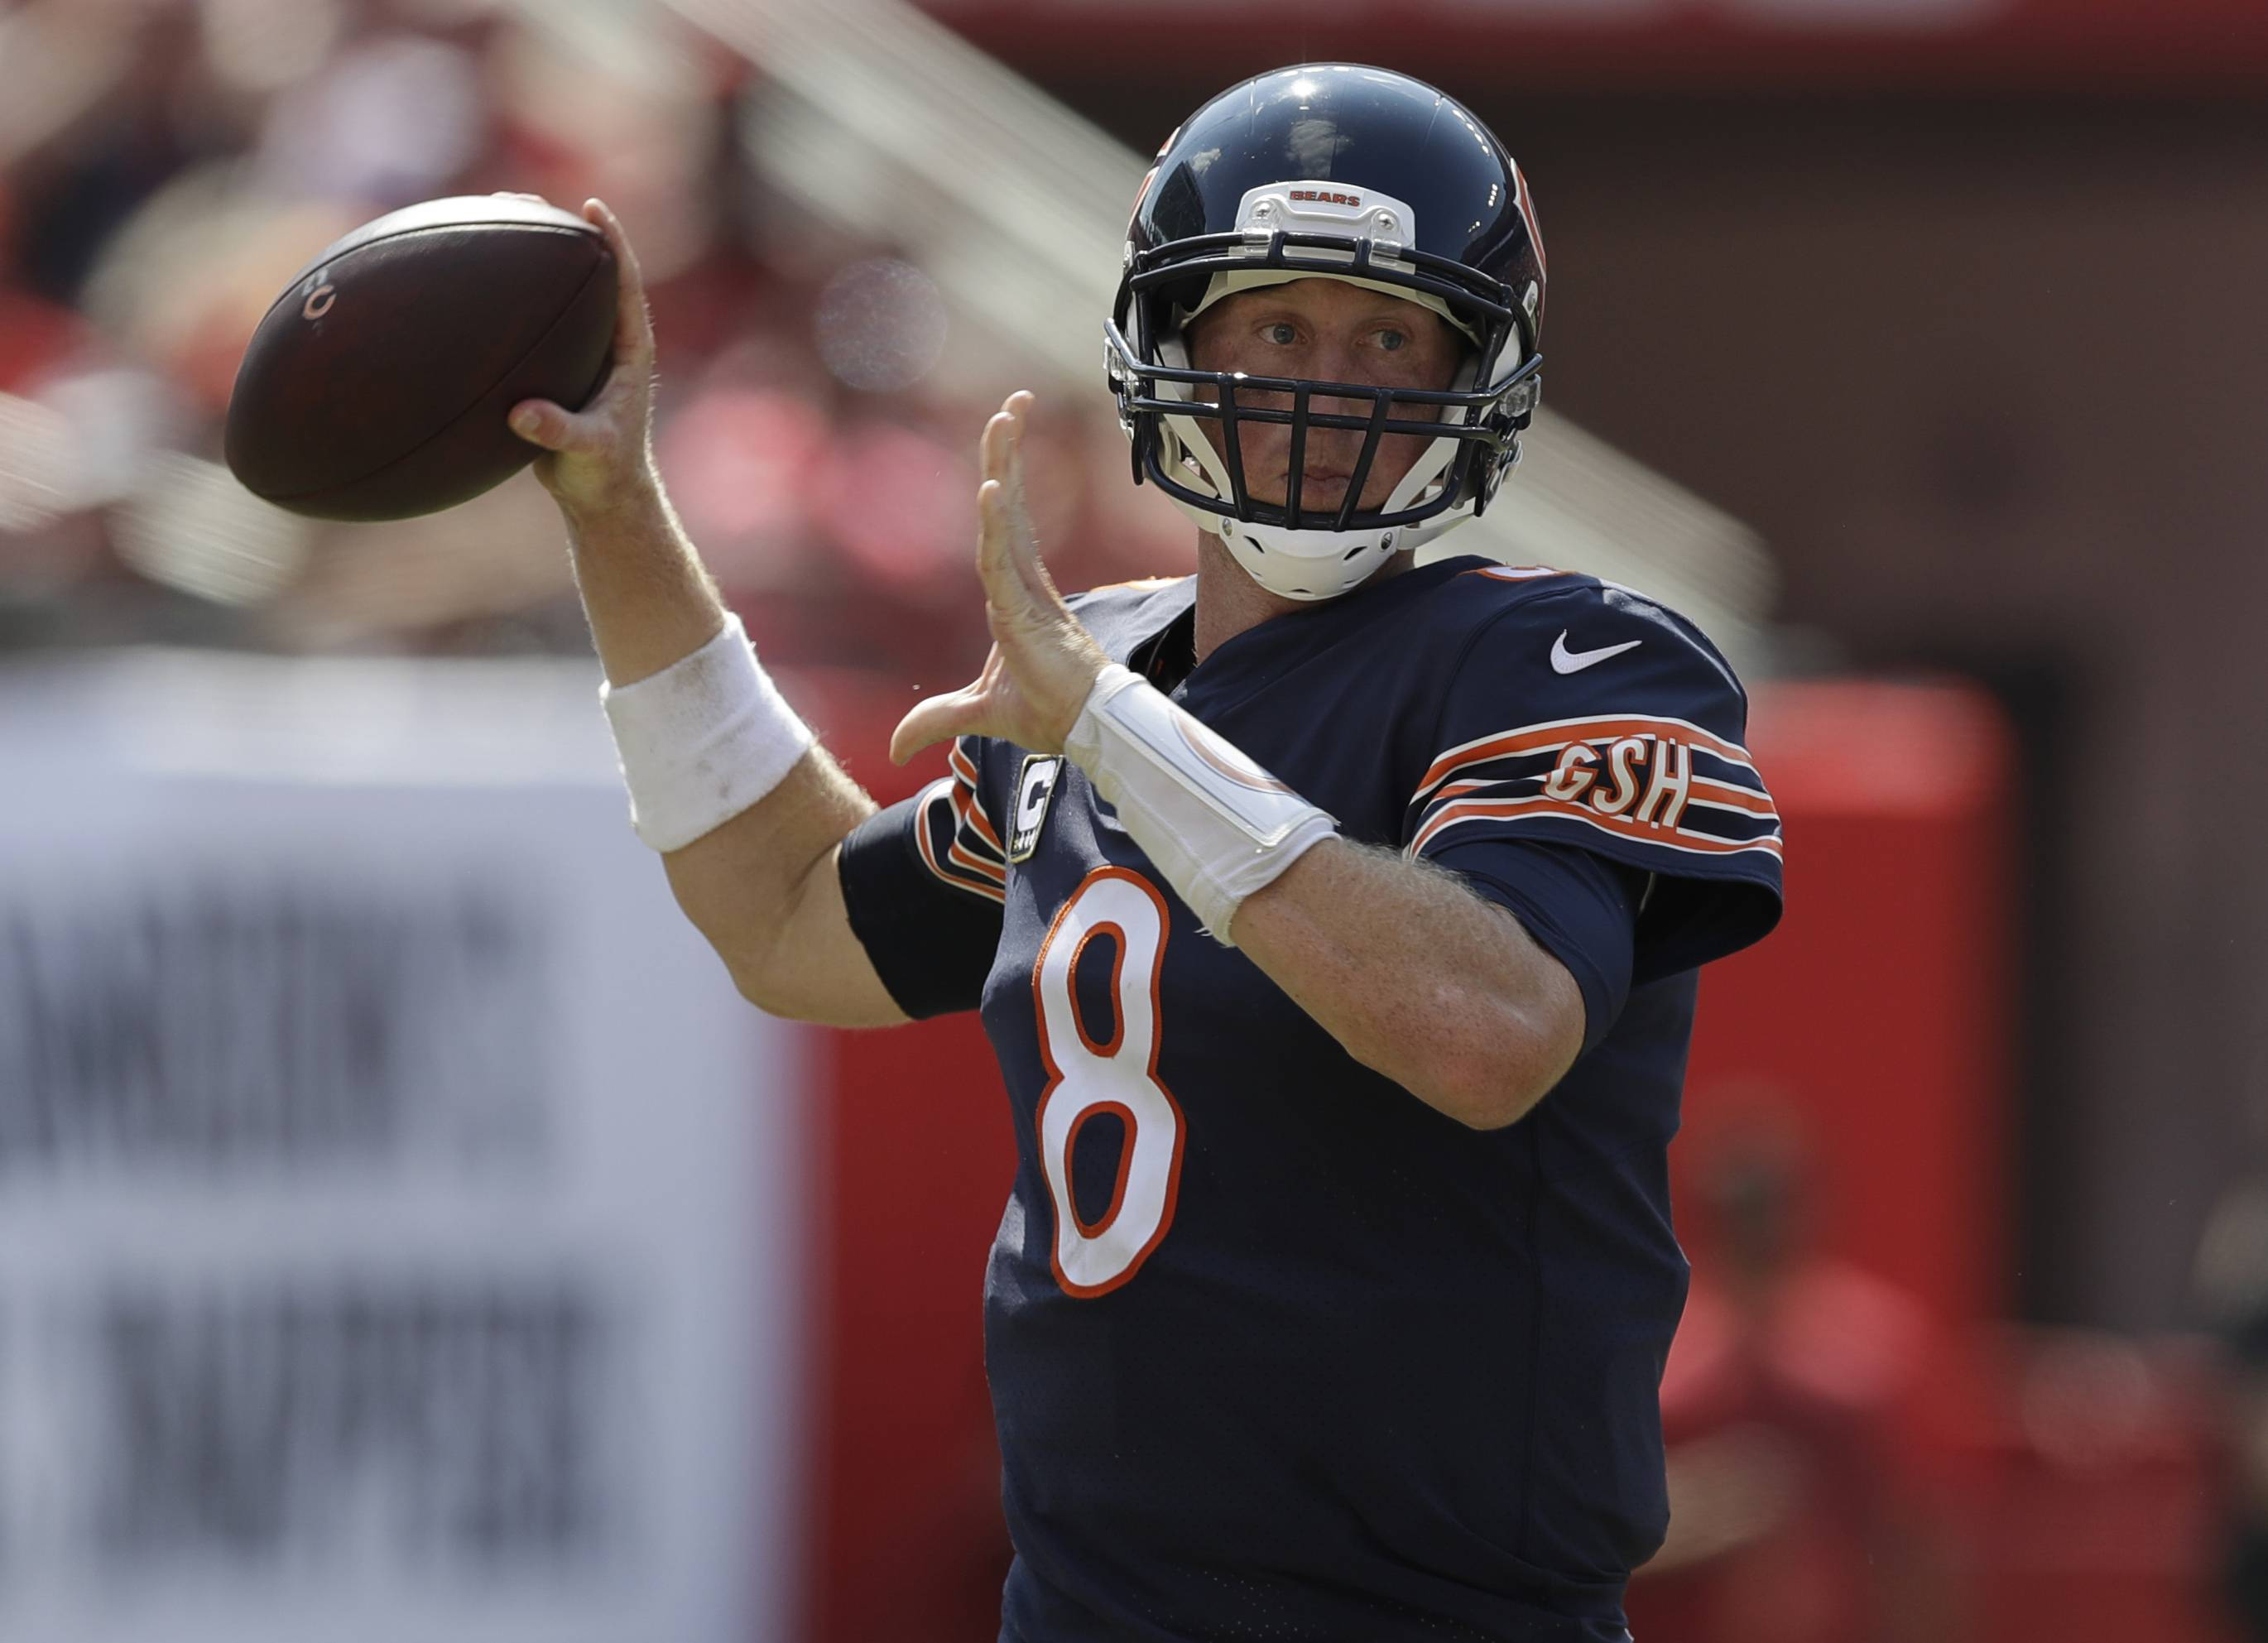 QB controversy renewed? Bucs blow out Chicago Bears 29-7